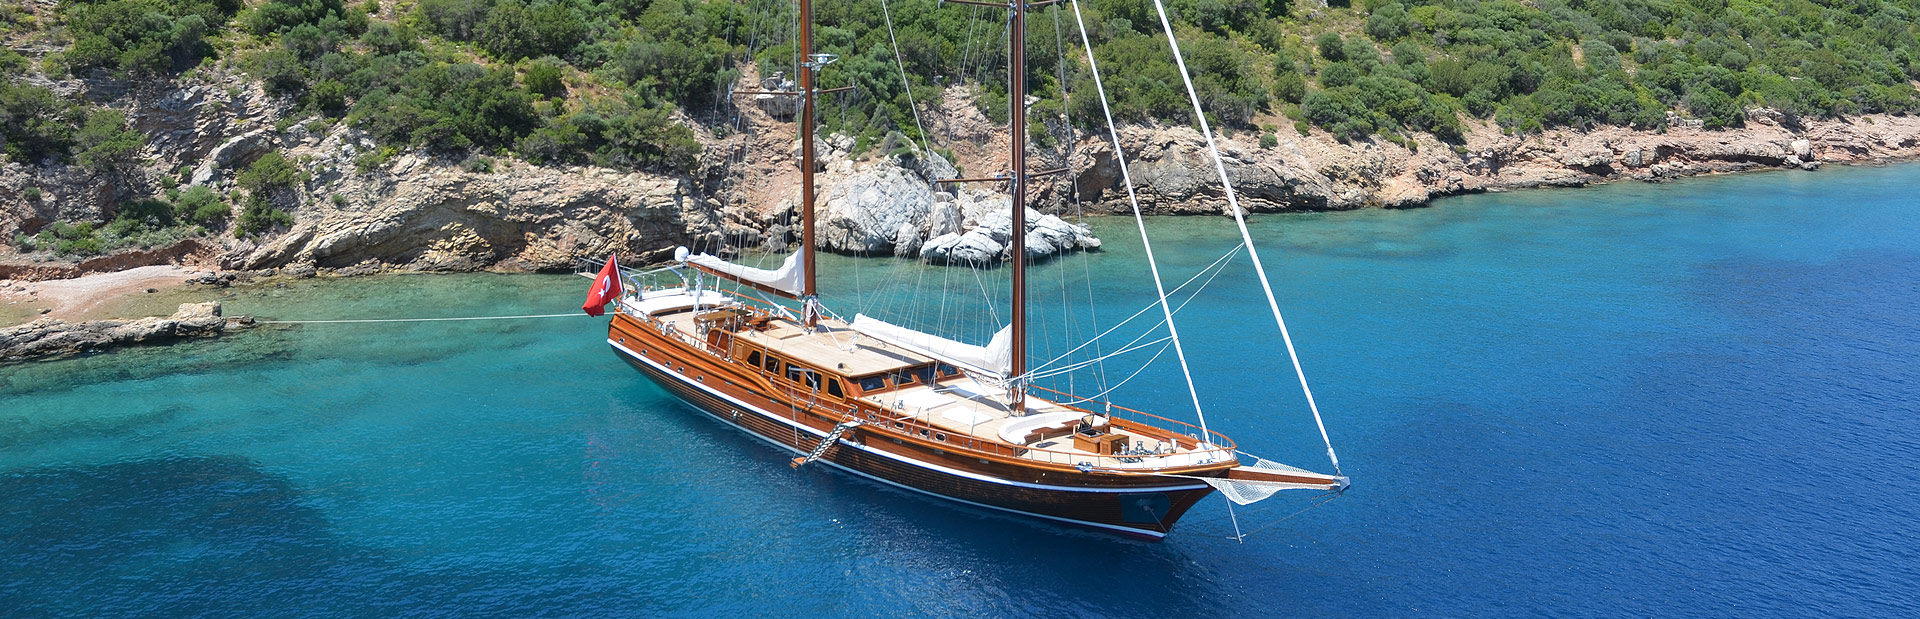 Gulet yacht Cakiryildiz anchored by the shore